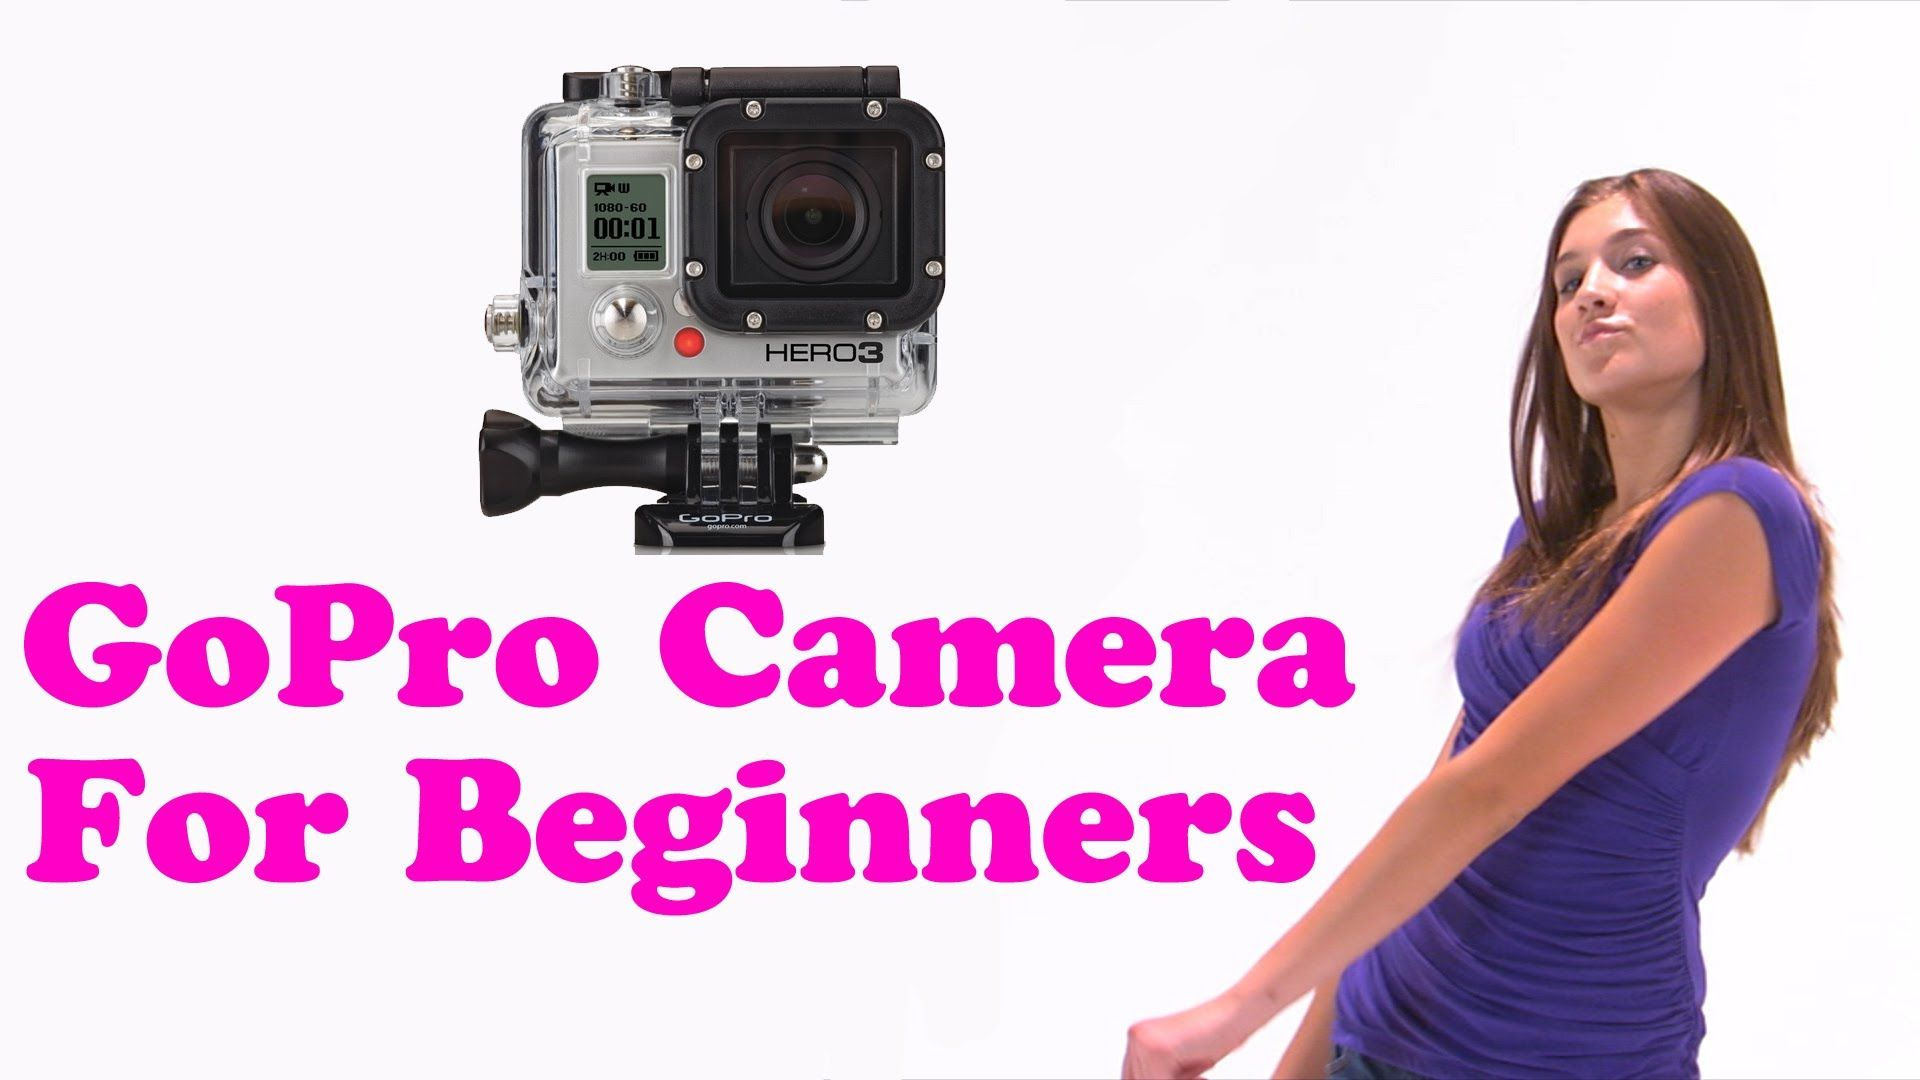 Gopro Camera How To Use For Beginners Gopro Camera Gopro Gopro Photography